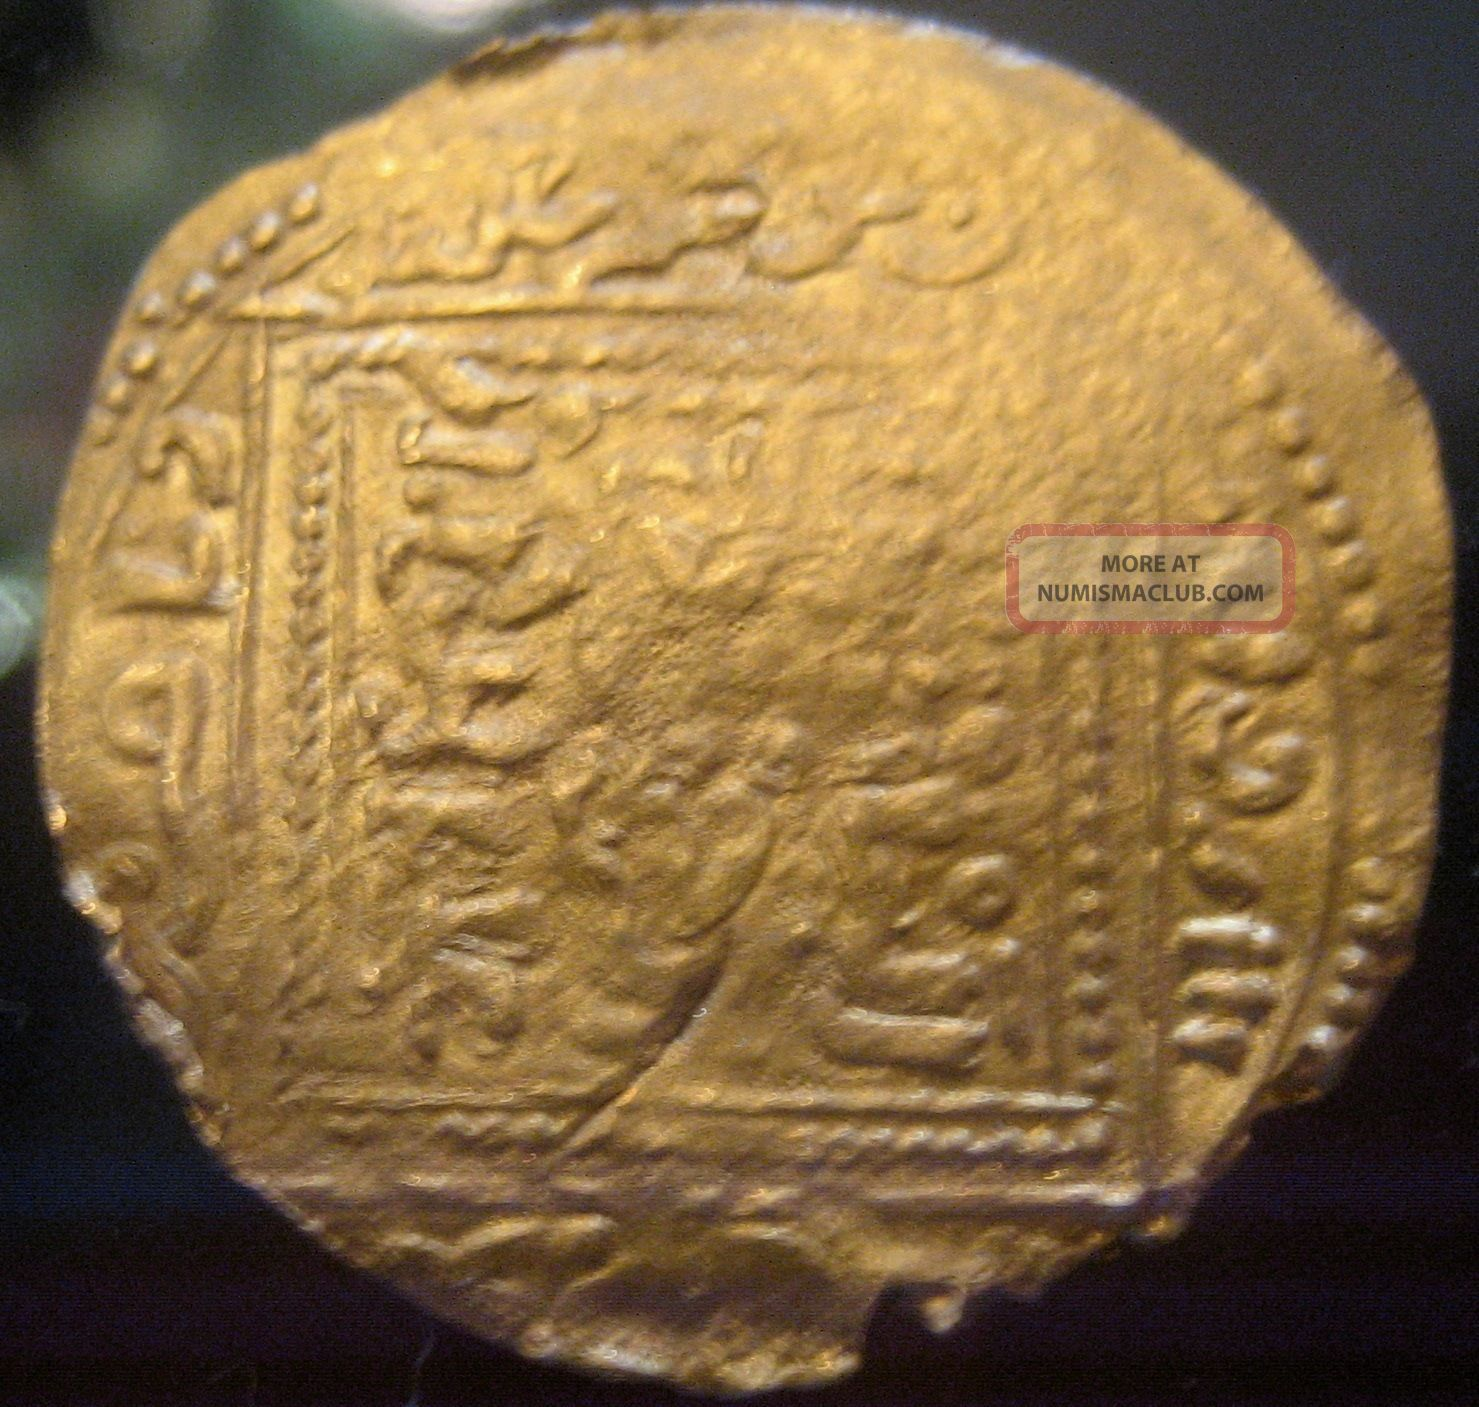 Very Rare Gold Arabian Empire North Africa Merinid Abu Zayd 1374 - 1382 Marrakesh Coins: Medieval photo